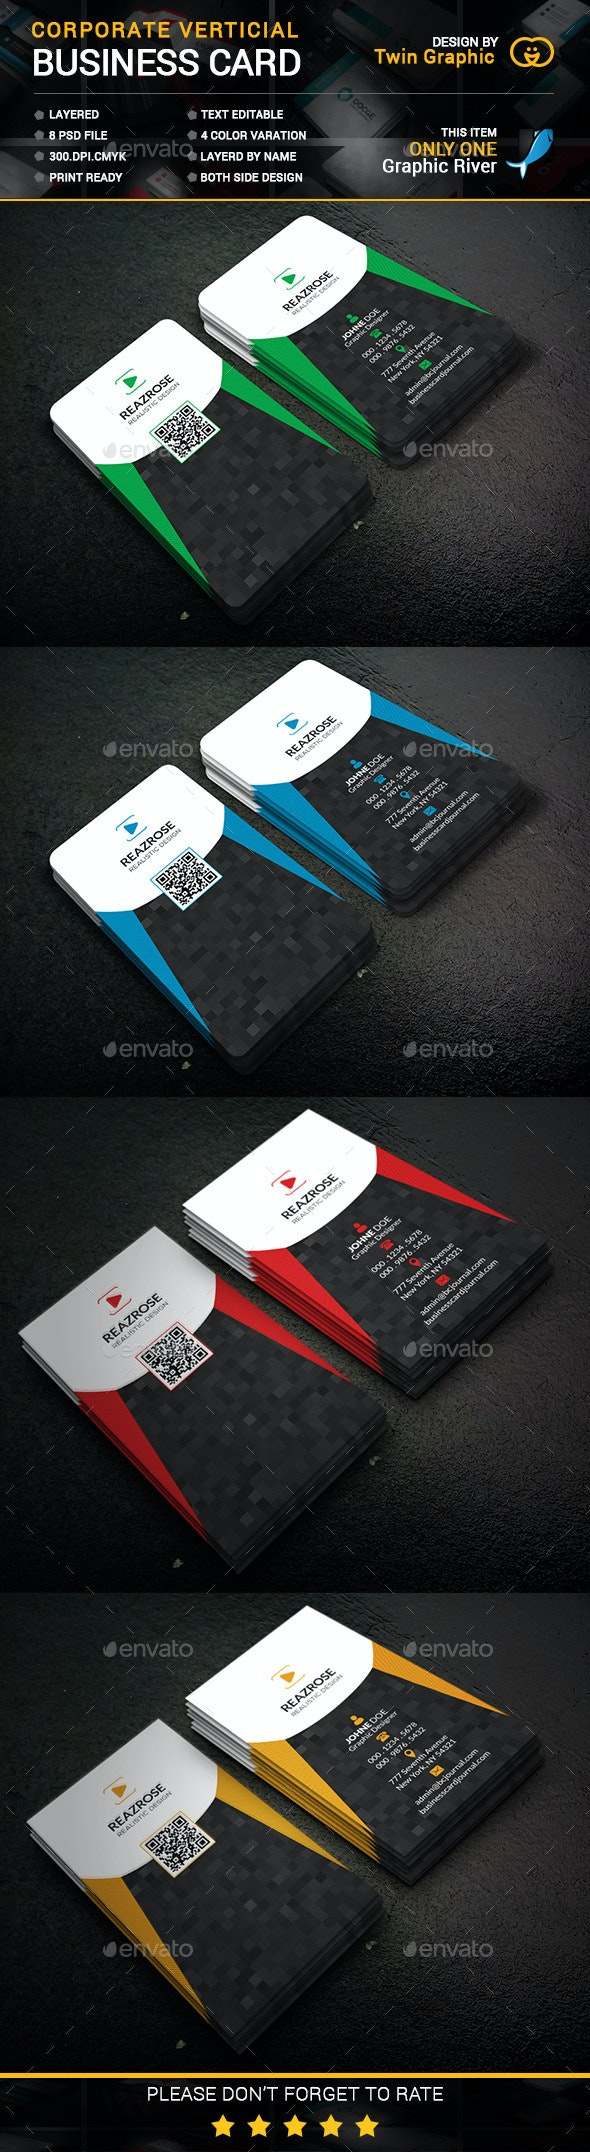 Corporate vertical Business Card design. - Business Cards Print Templates